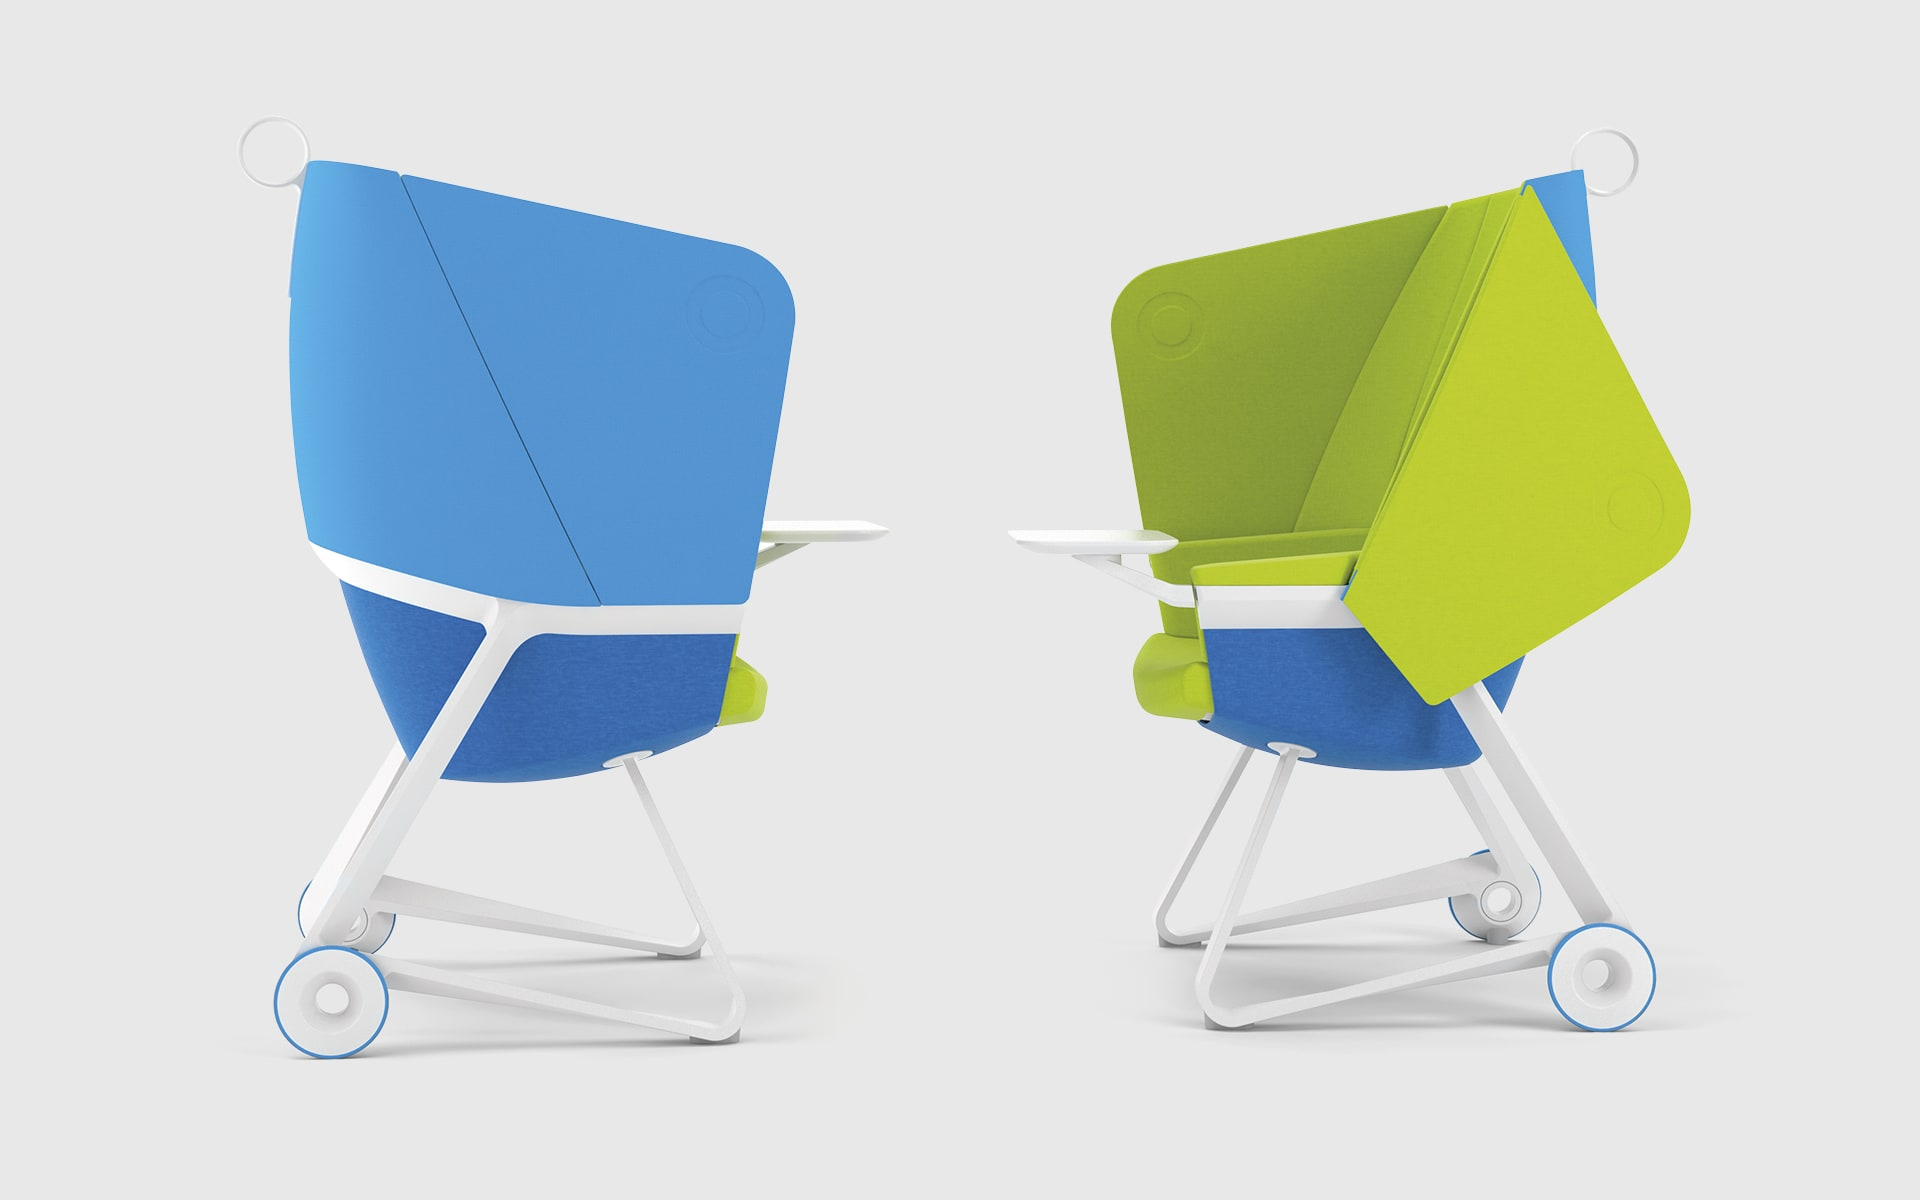 Two BASF TeamUP chairs by ITO Design face each other